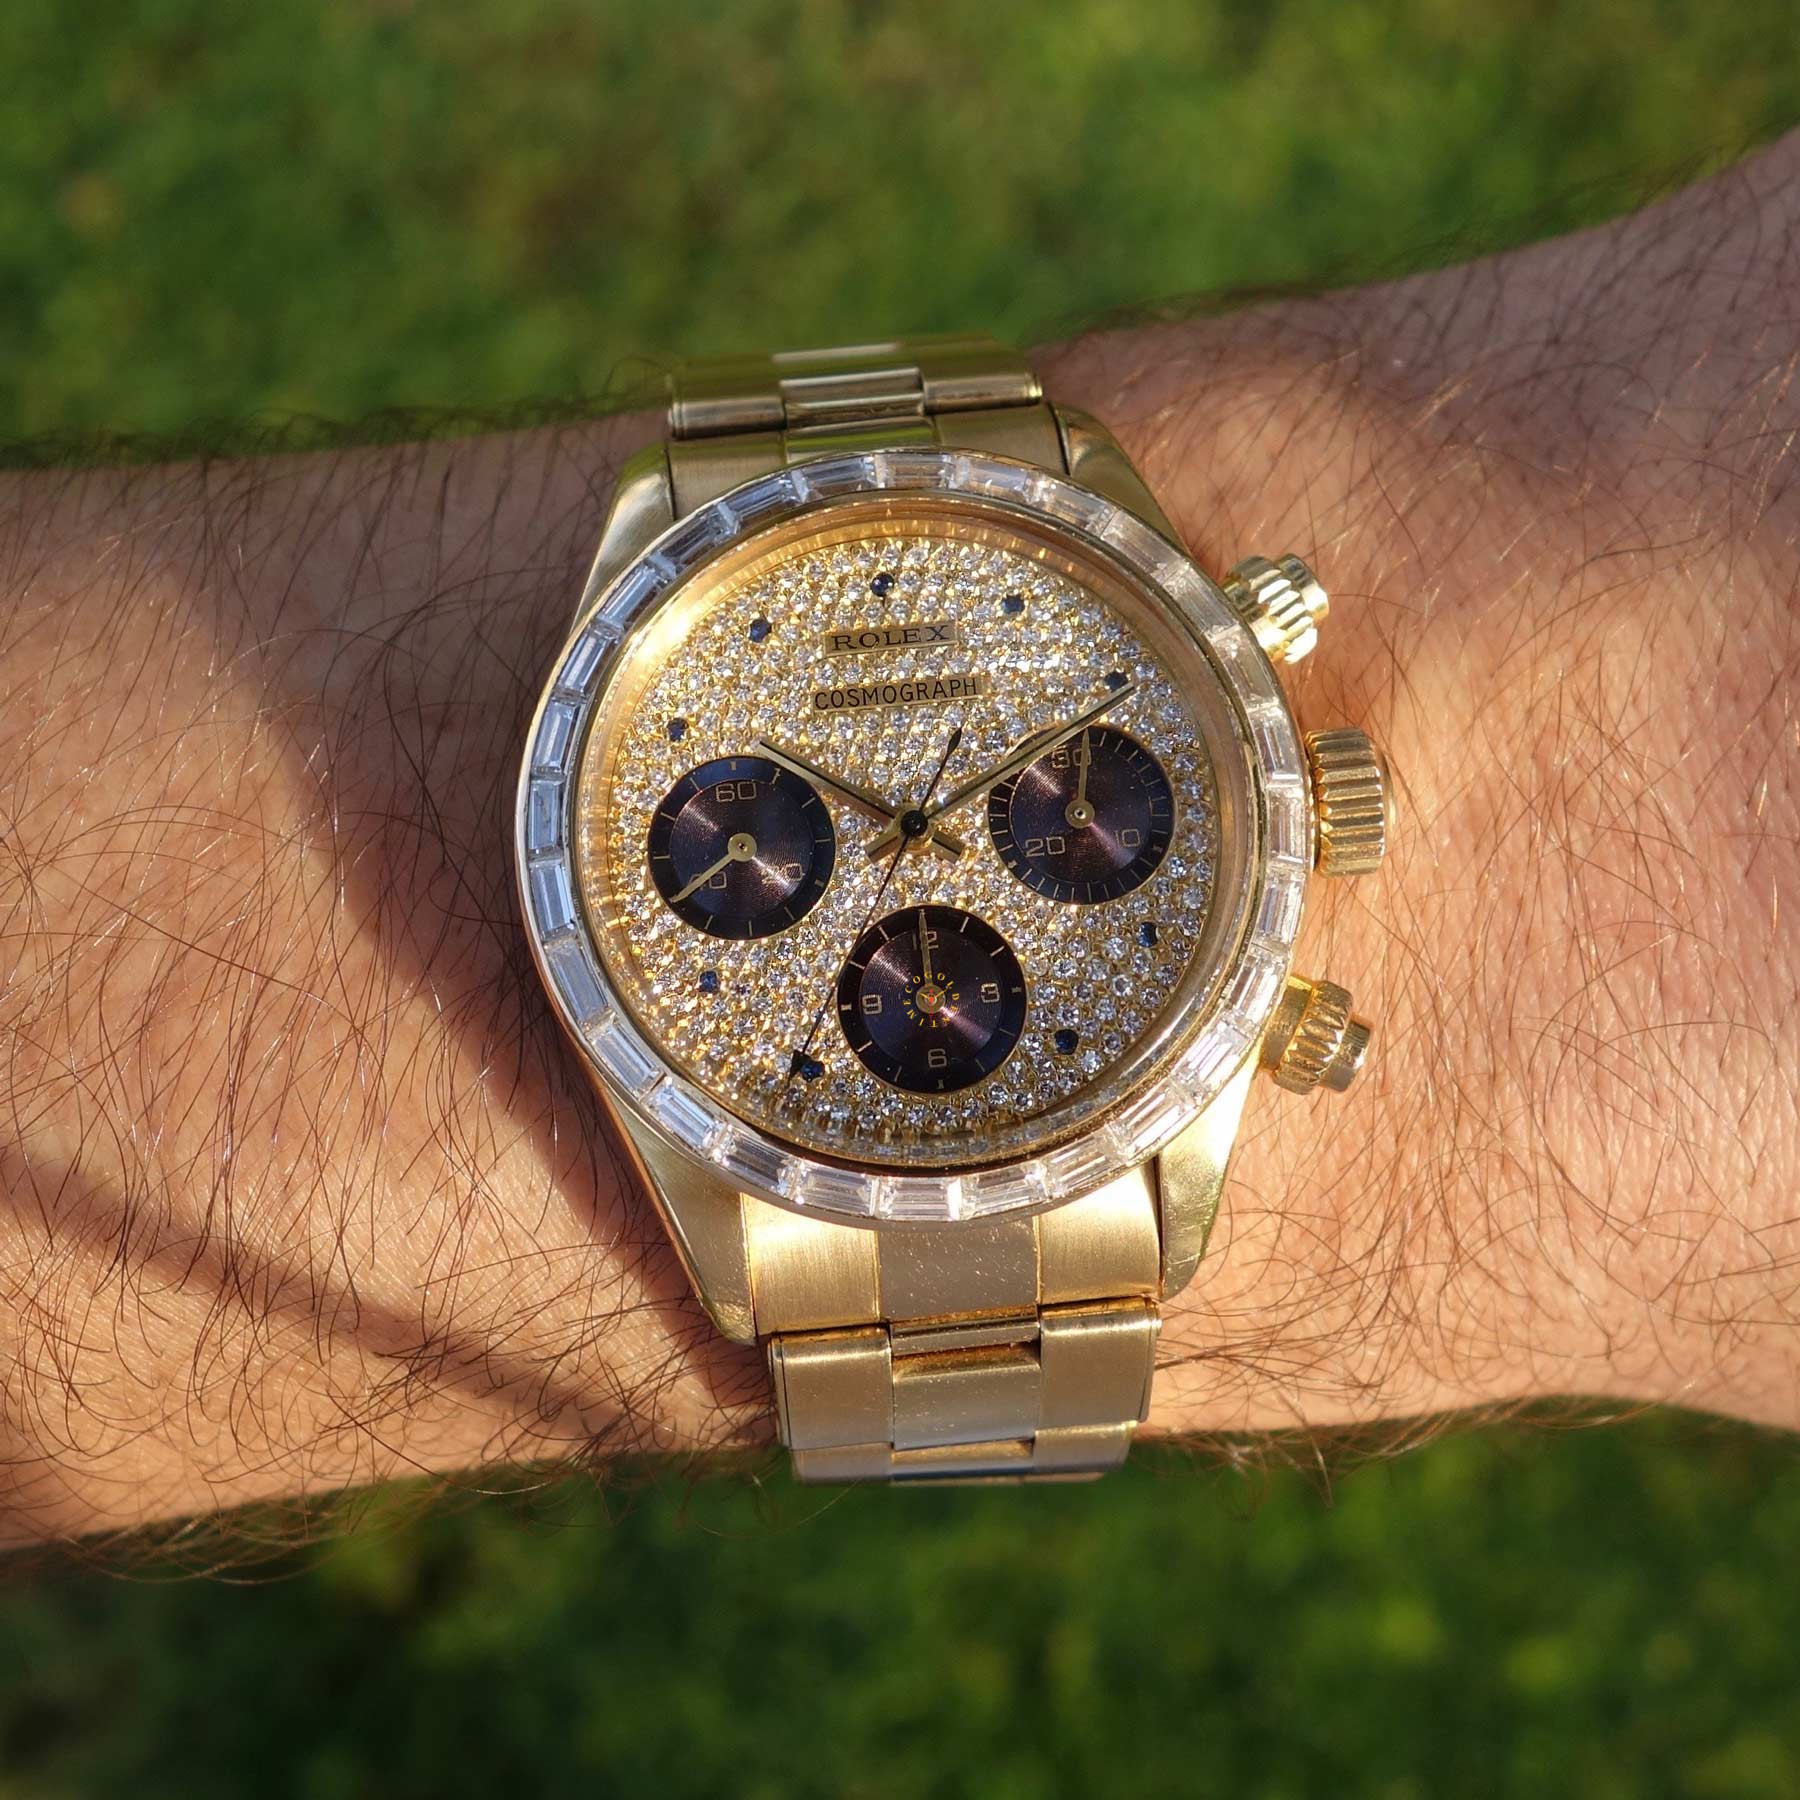 The first luxury Daytona ever produced! Rolex Daytona 6269